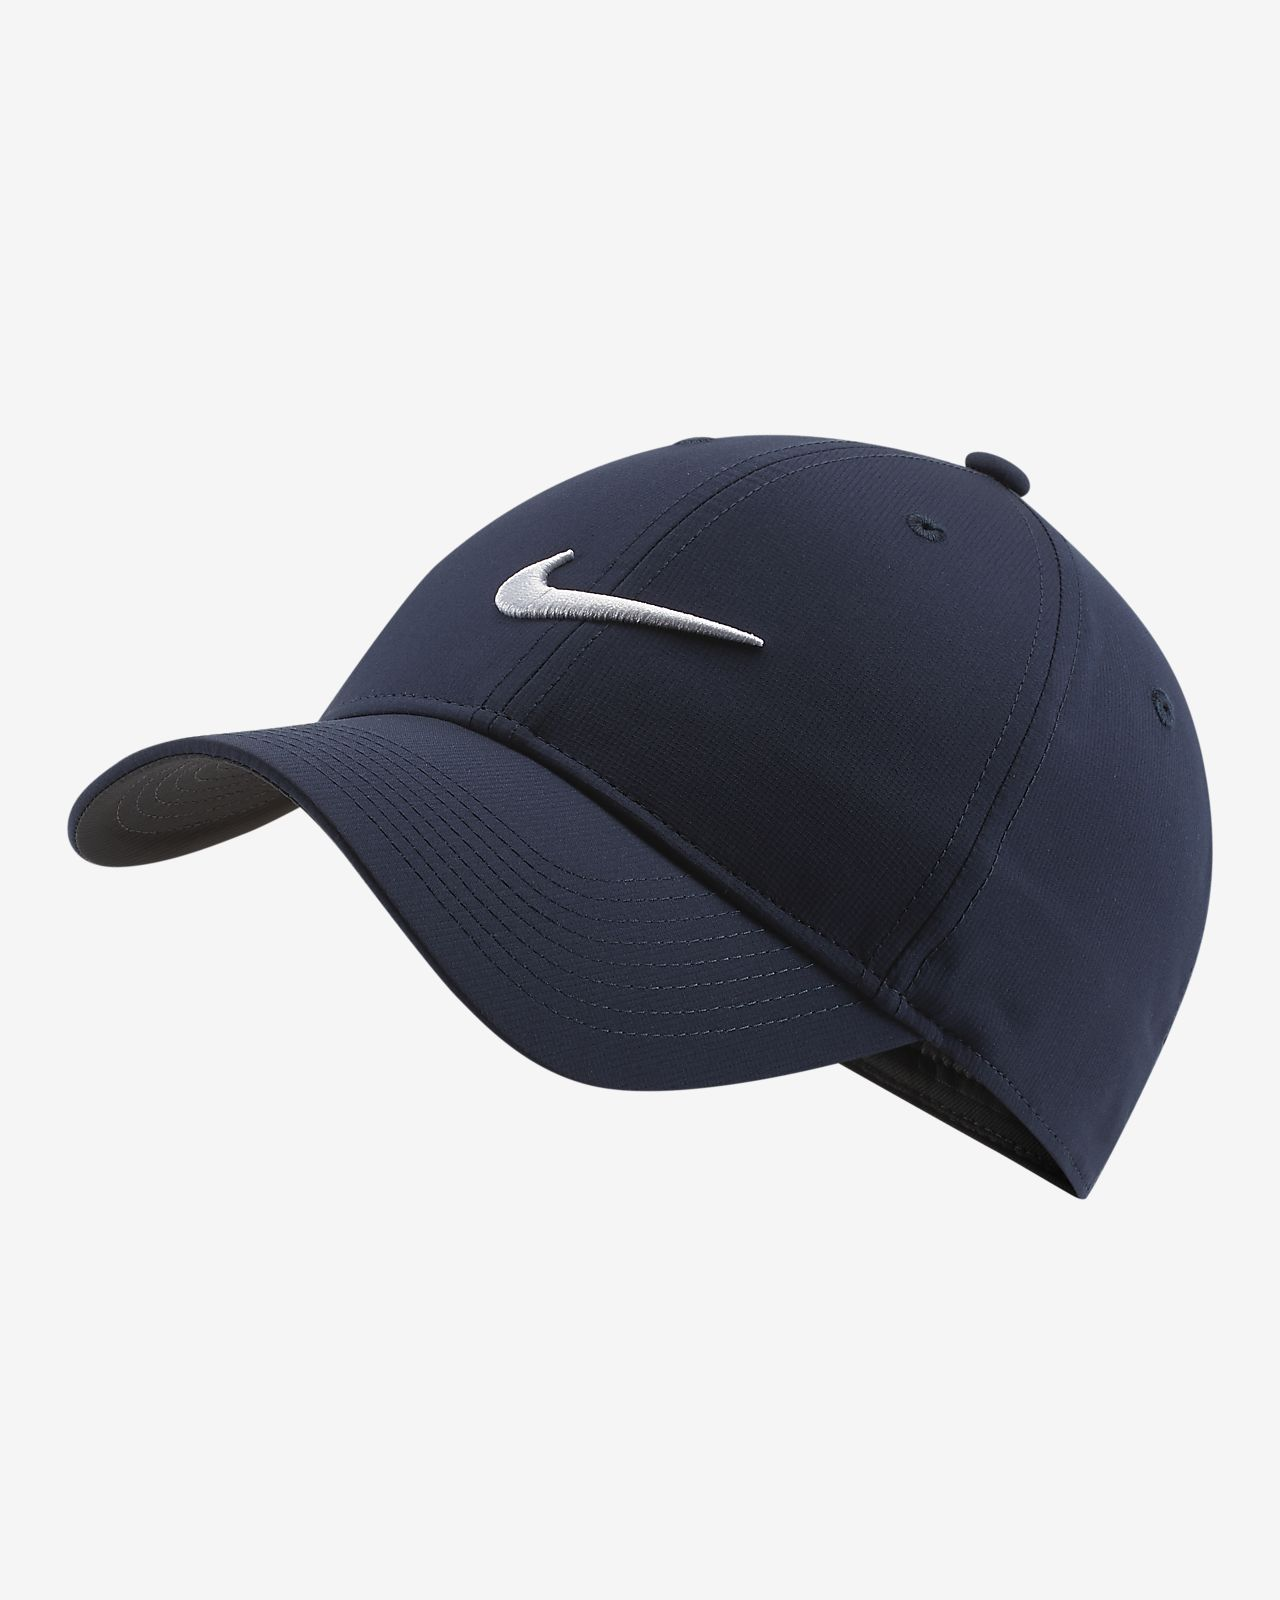 Nike Legacy 91 Adjustable Golf Hat